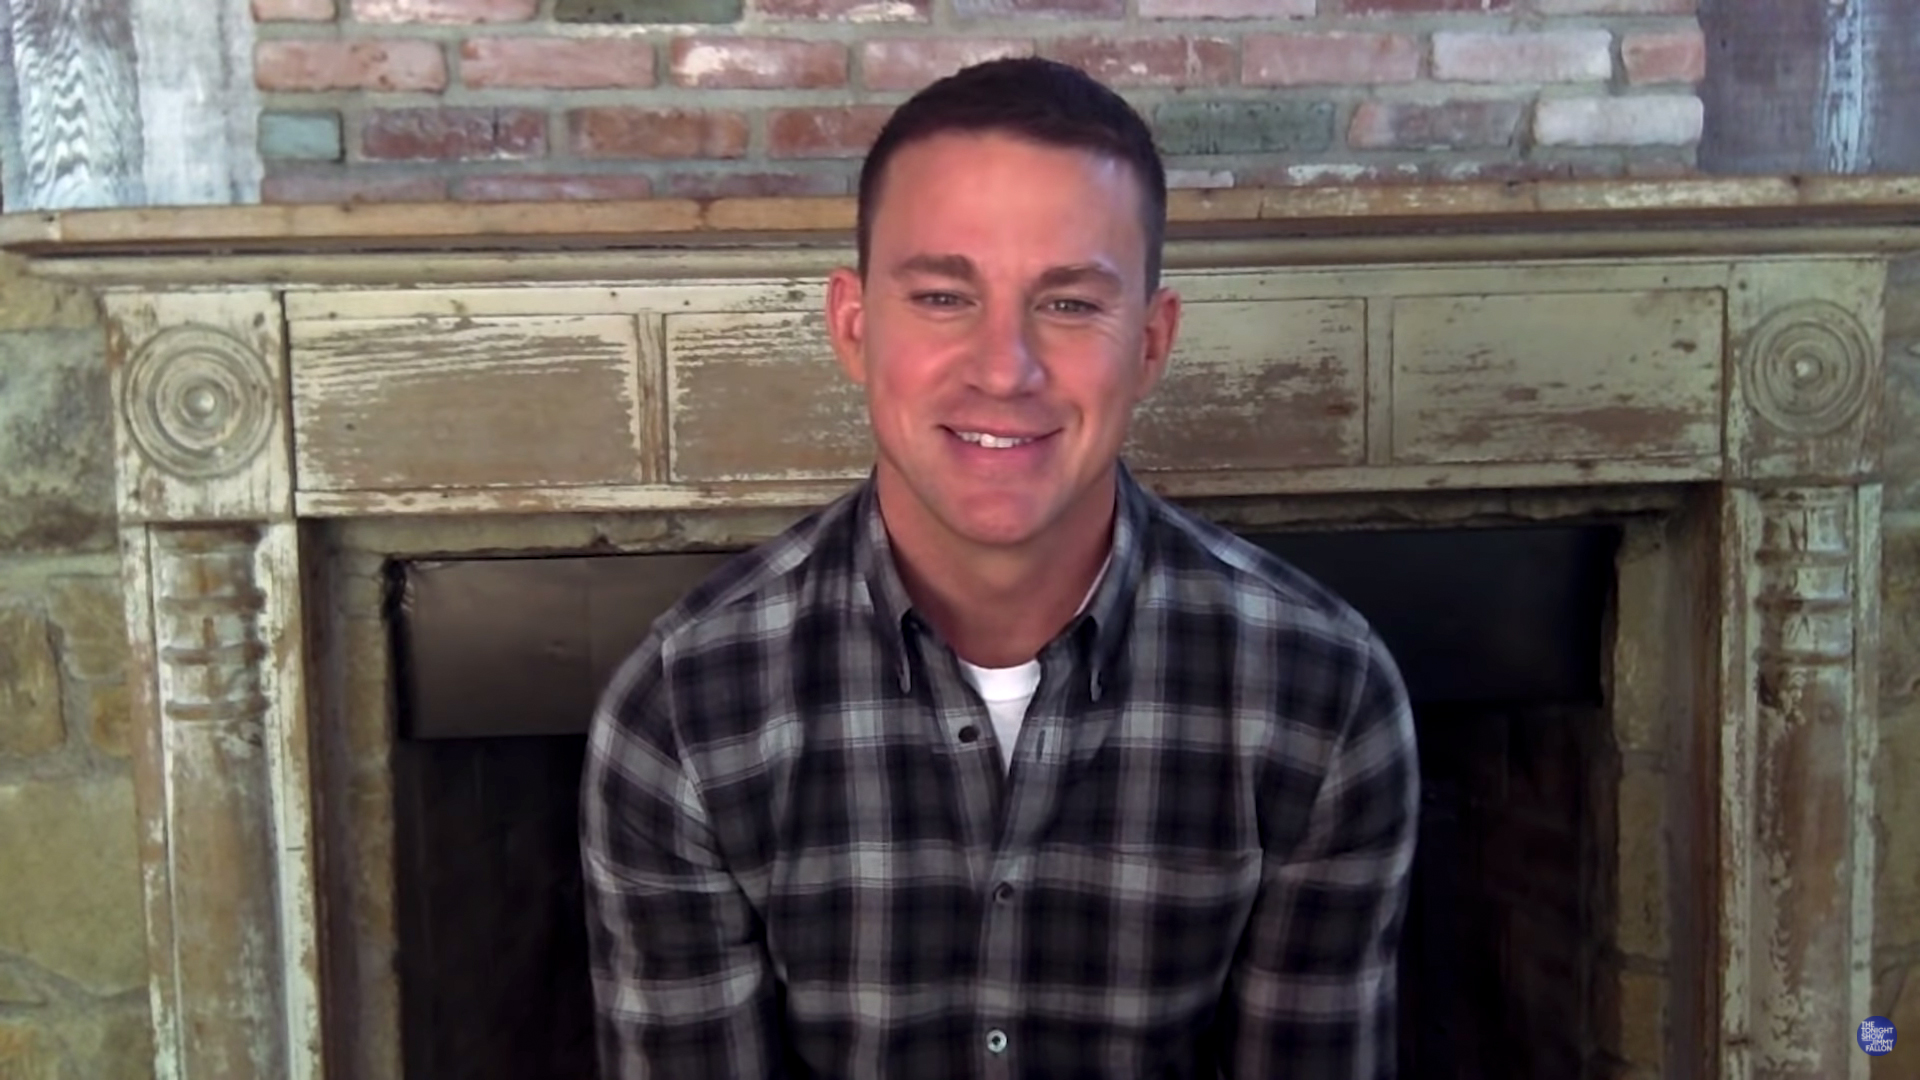 Channing Tatum on Getting in Shape amid COVID Pandemic: 'I Came Out a Completely New Person'